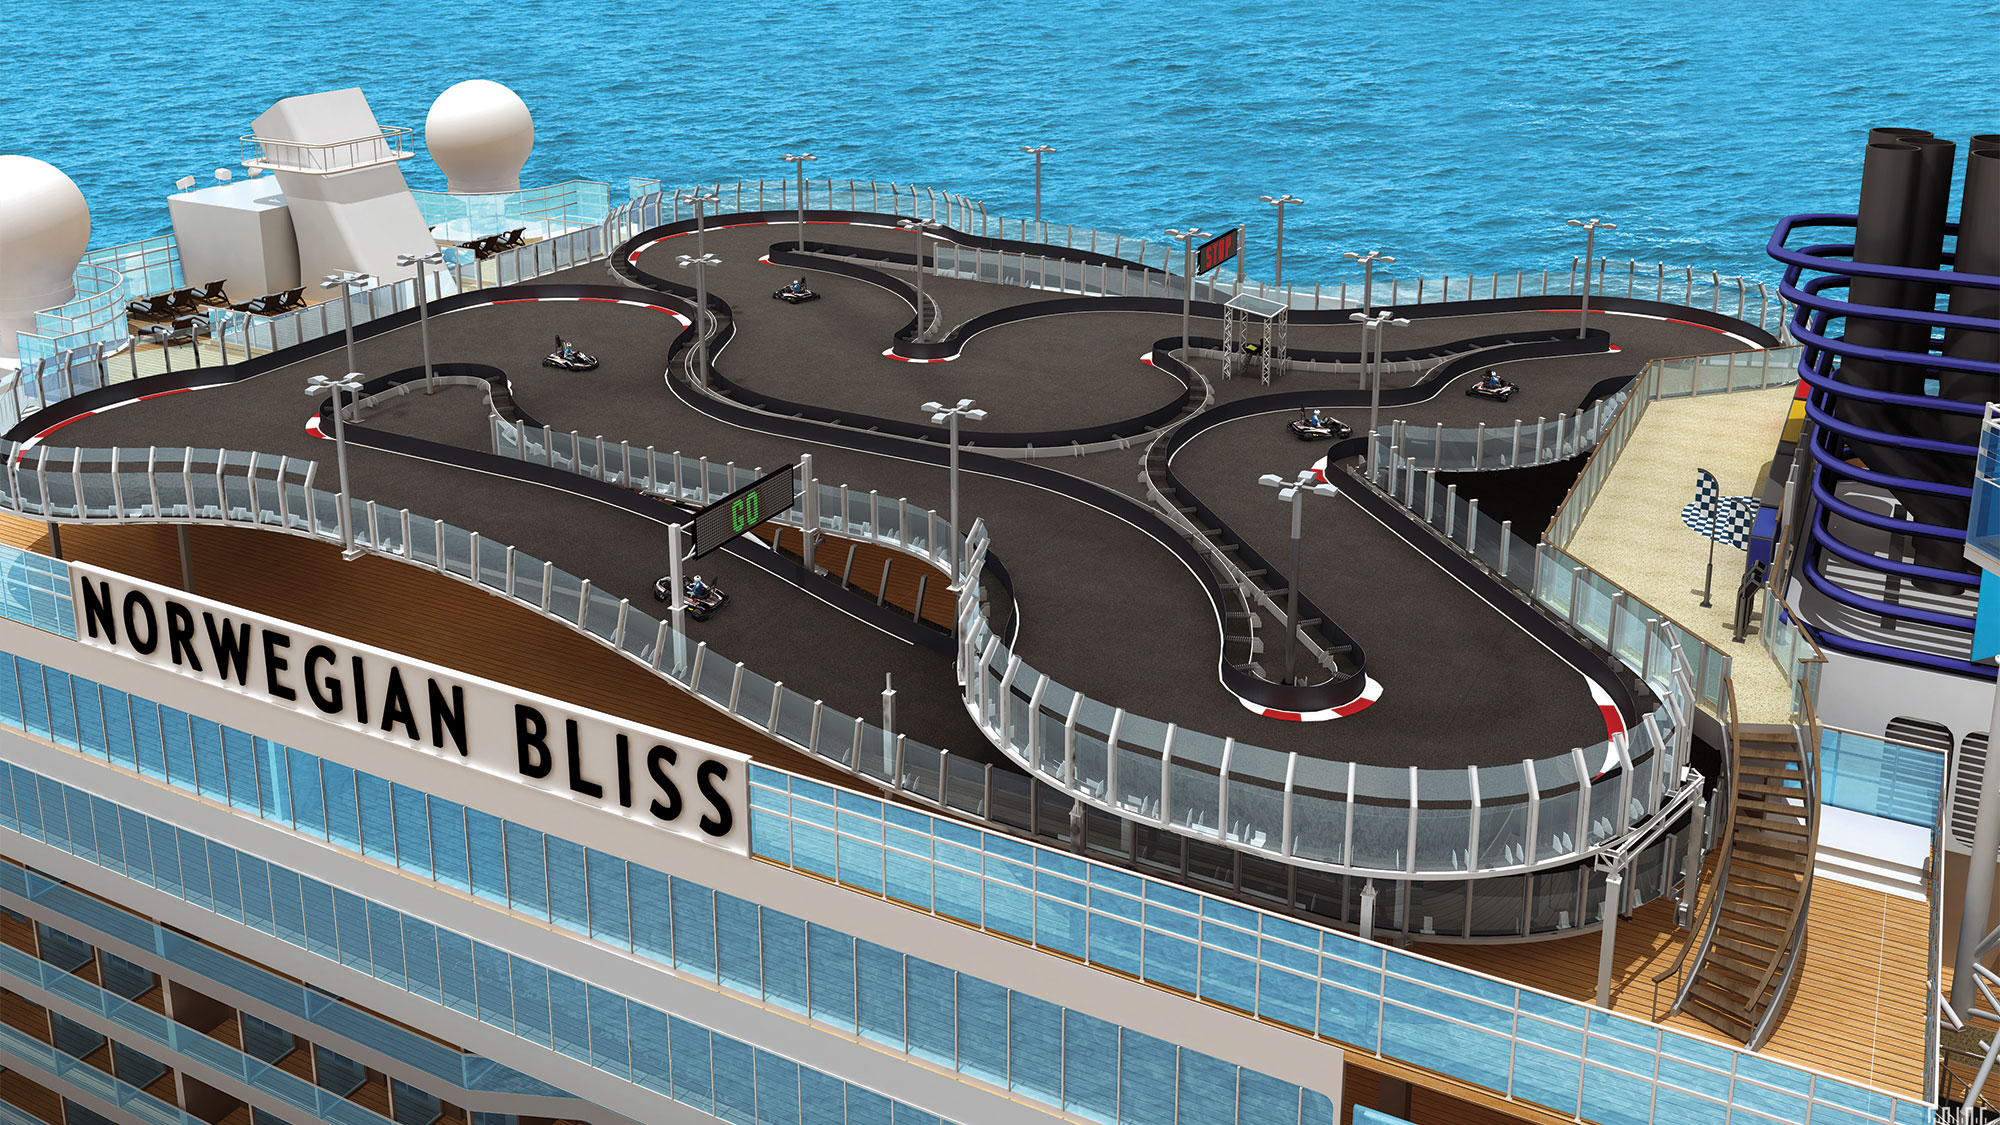 Norwegian Bliss Going Big With Go Cart Track Other